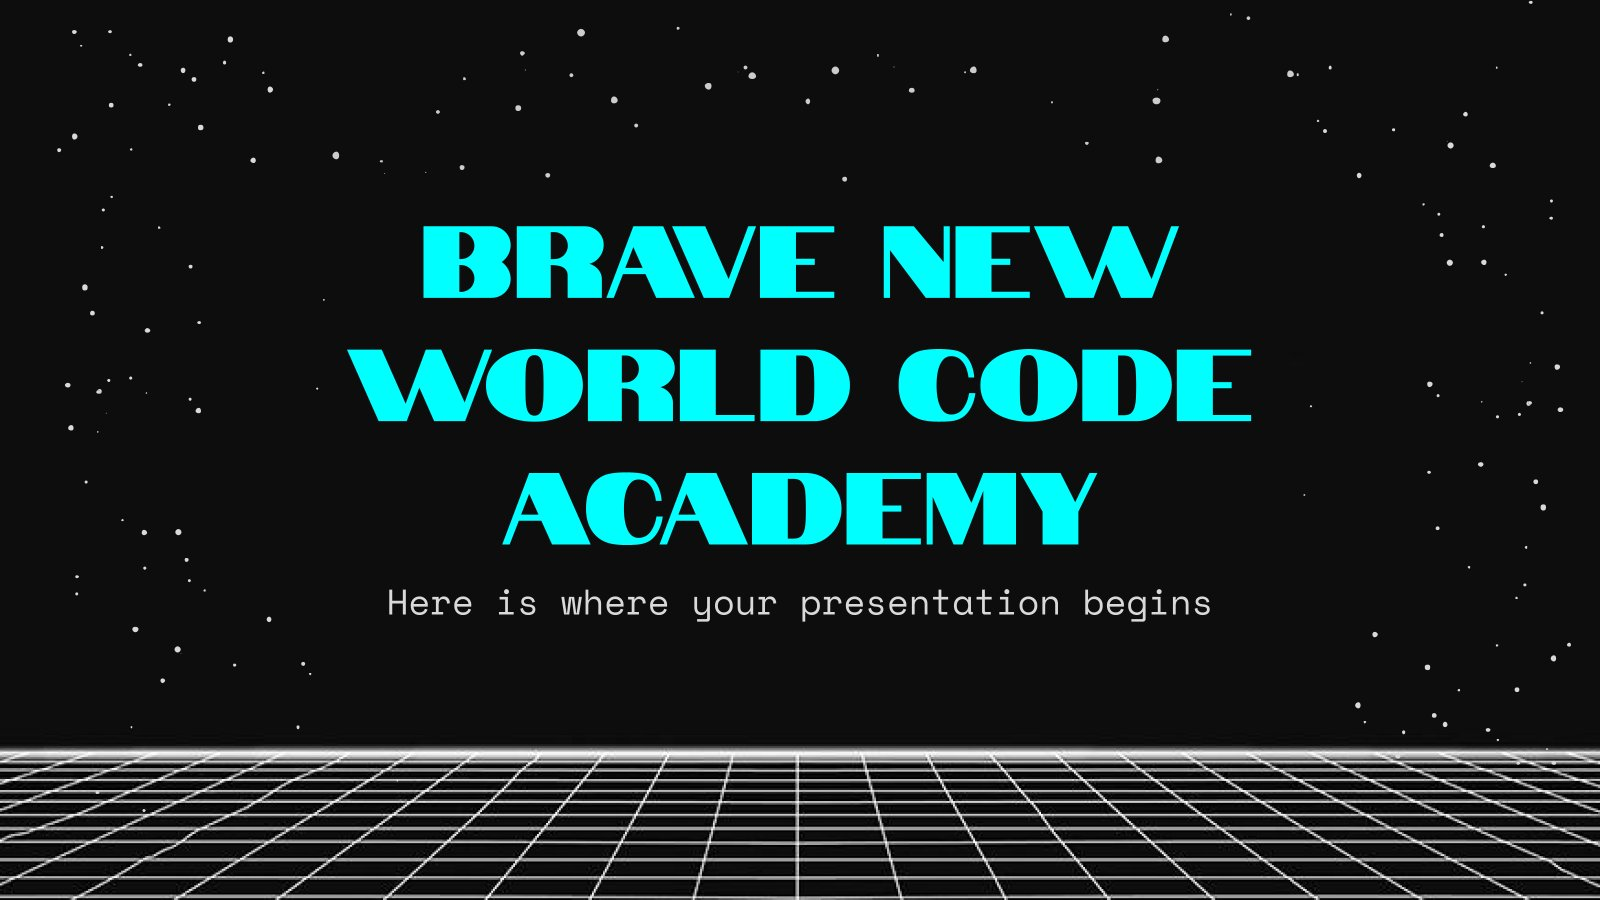 Brave New World Code Academy presentation template